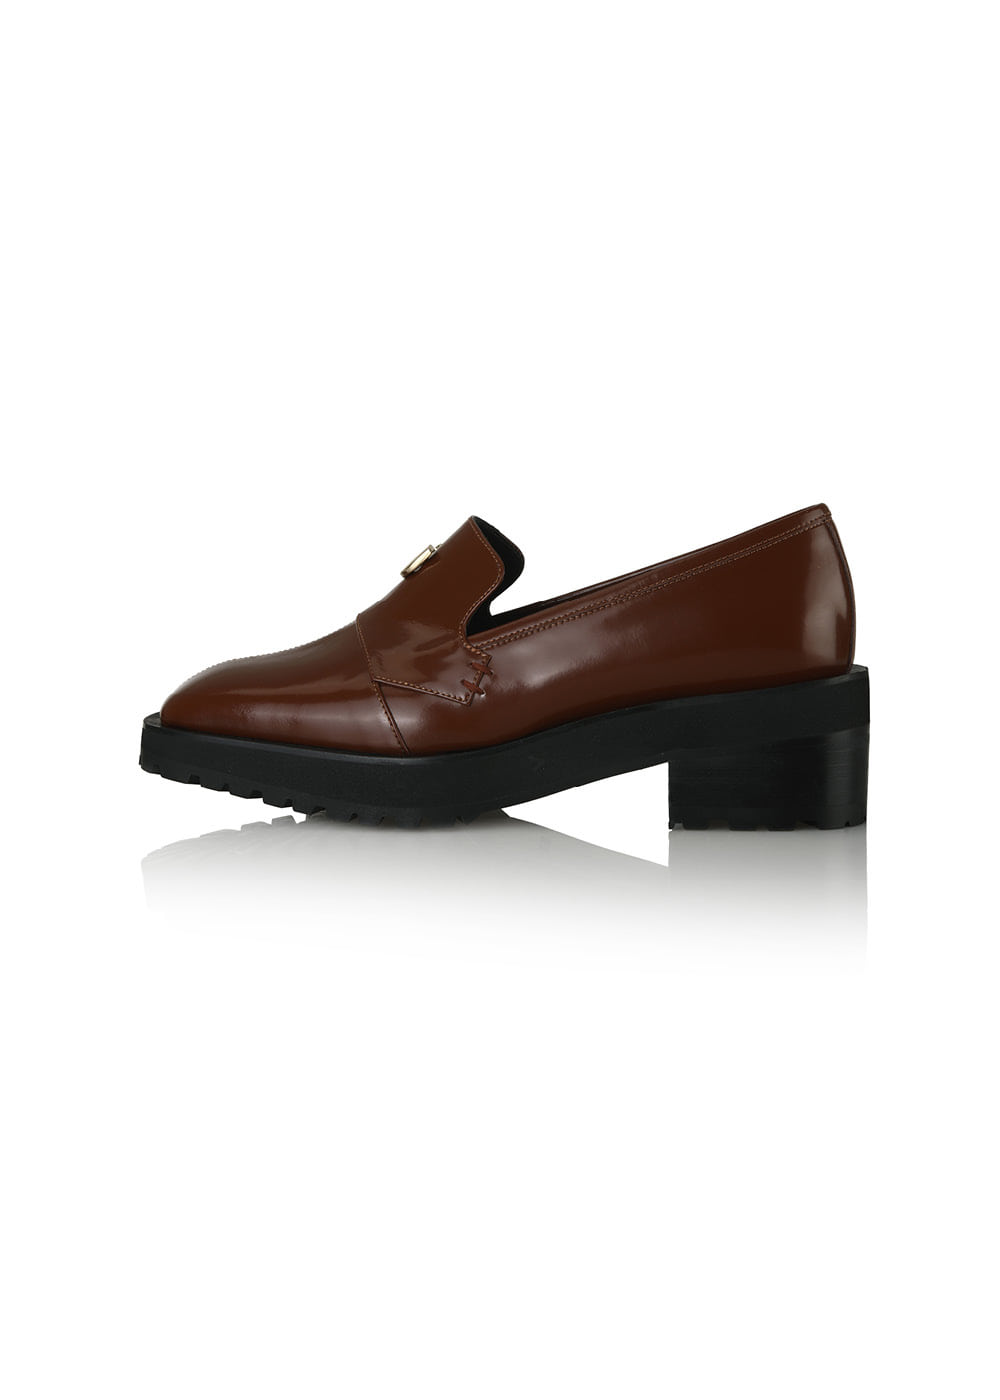 Y.03 Gemini Platform Loafer / YY20A-F13 / 3 colors